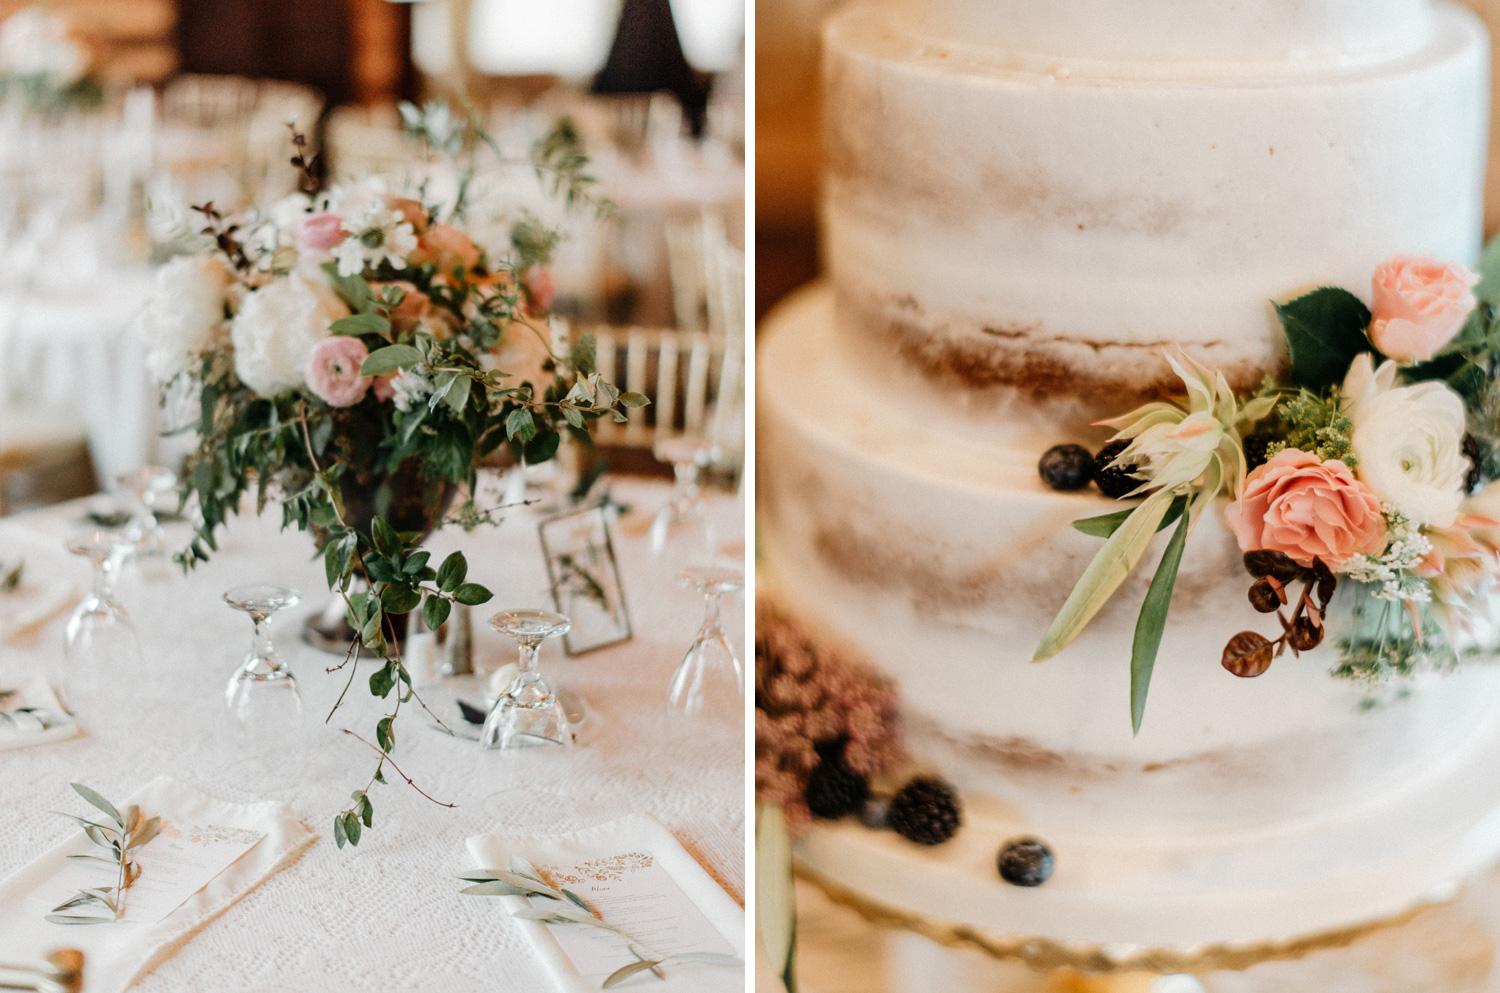 gorgeous wedding details at Southwind Hills by geneoh photograph